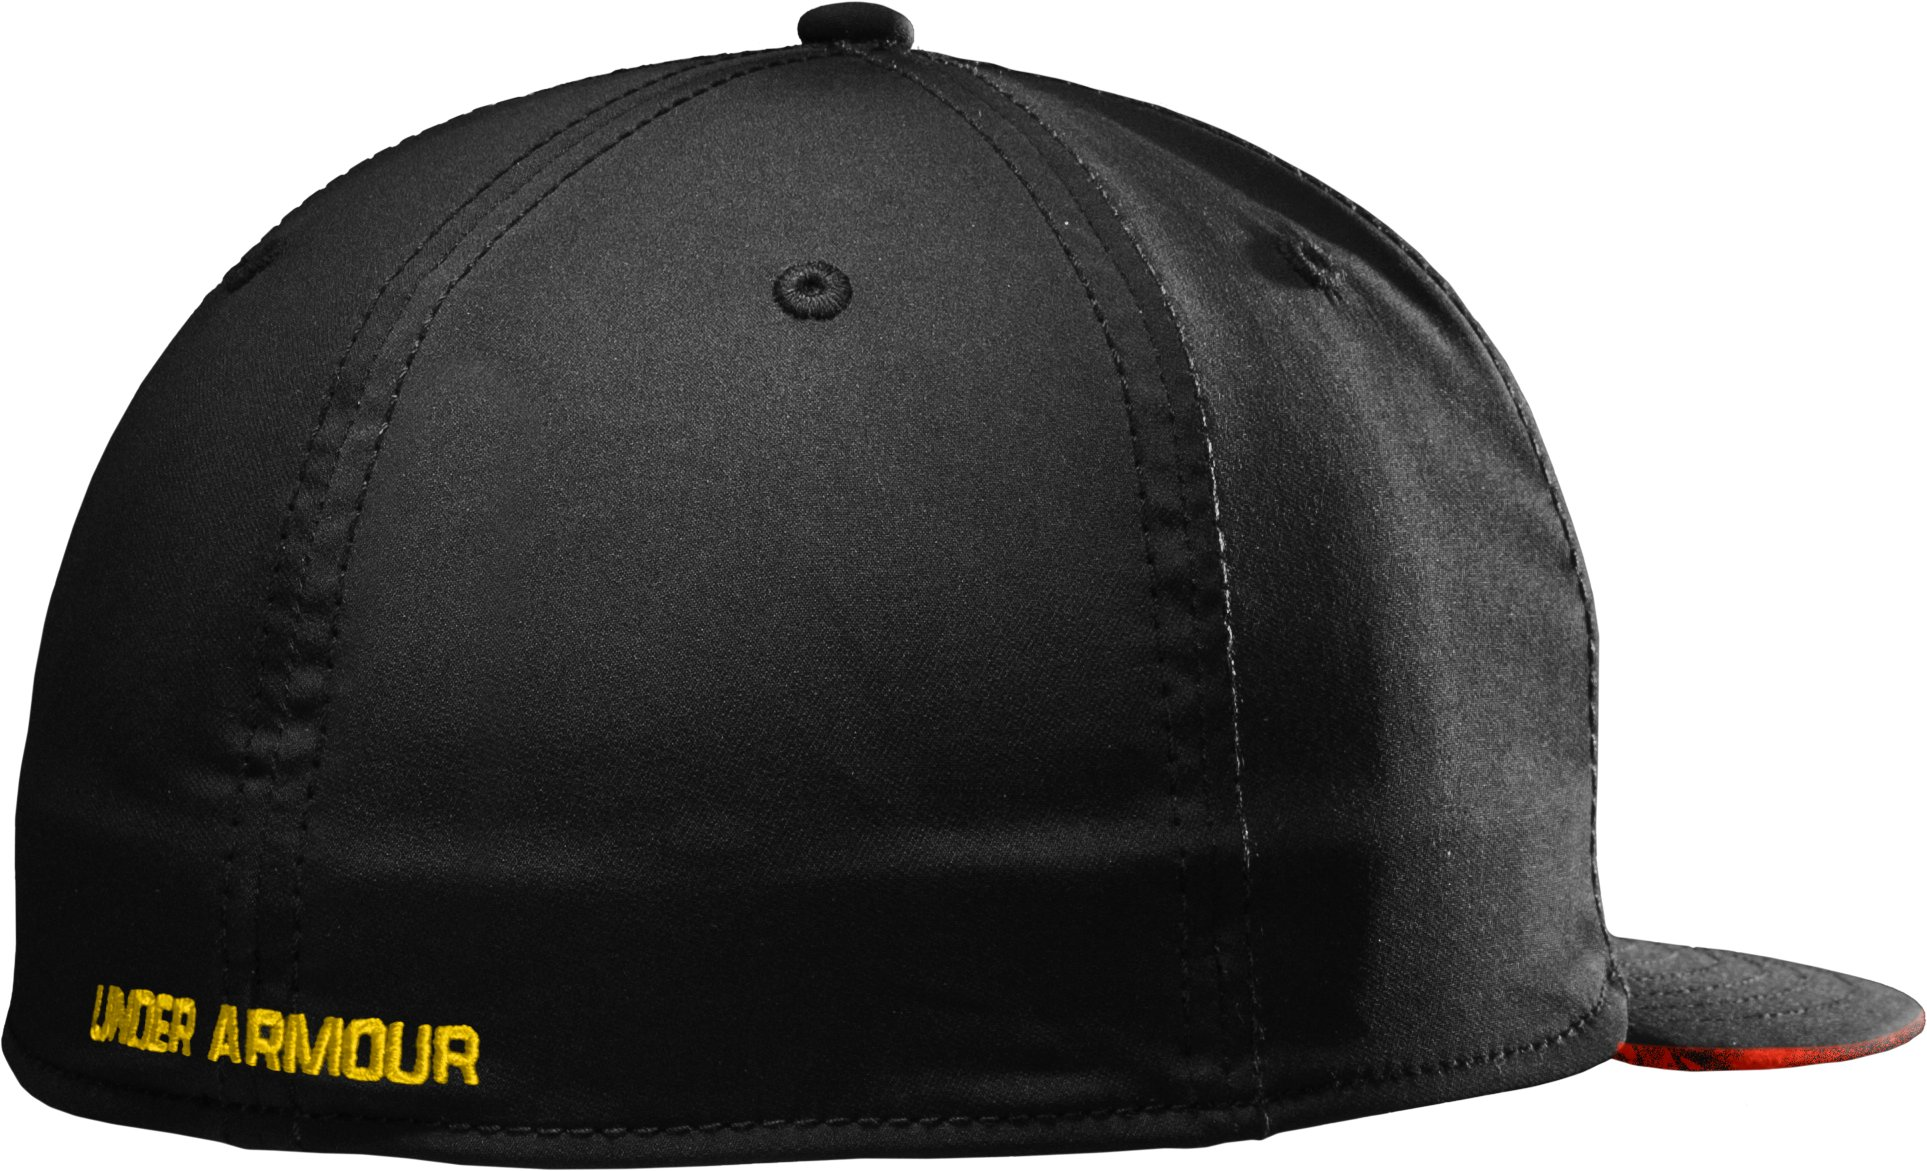 Men's NFL Combine Authentic Flat Brim Cap, Black